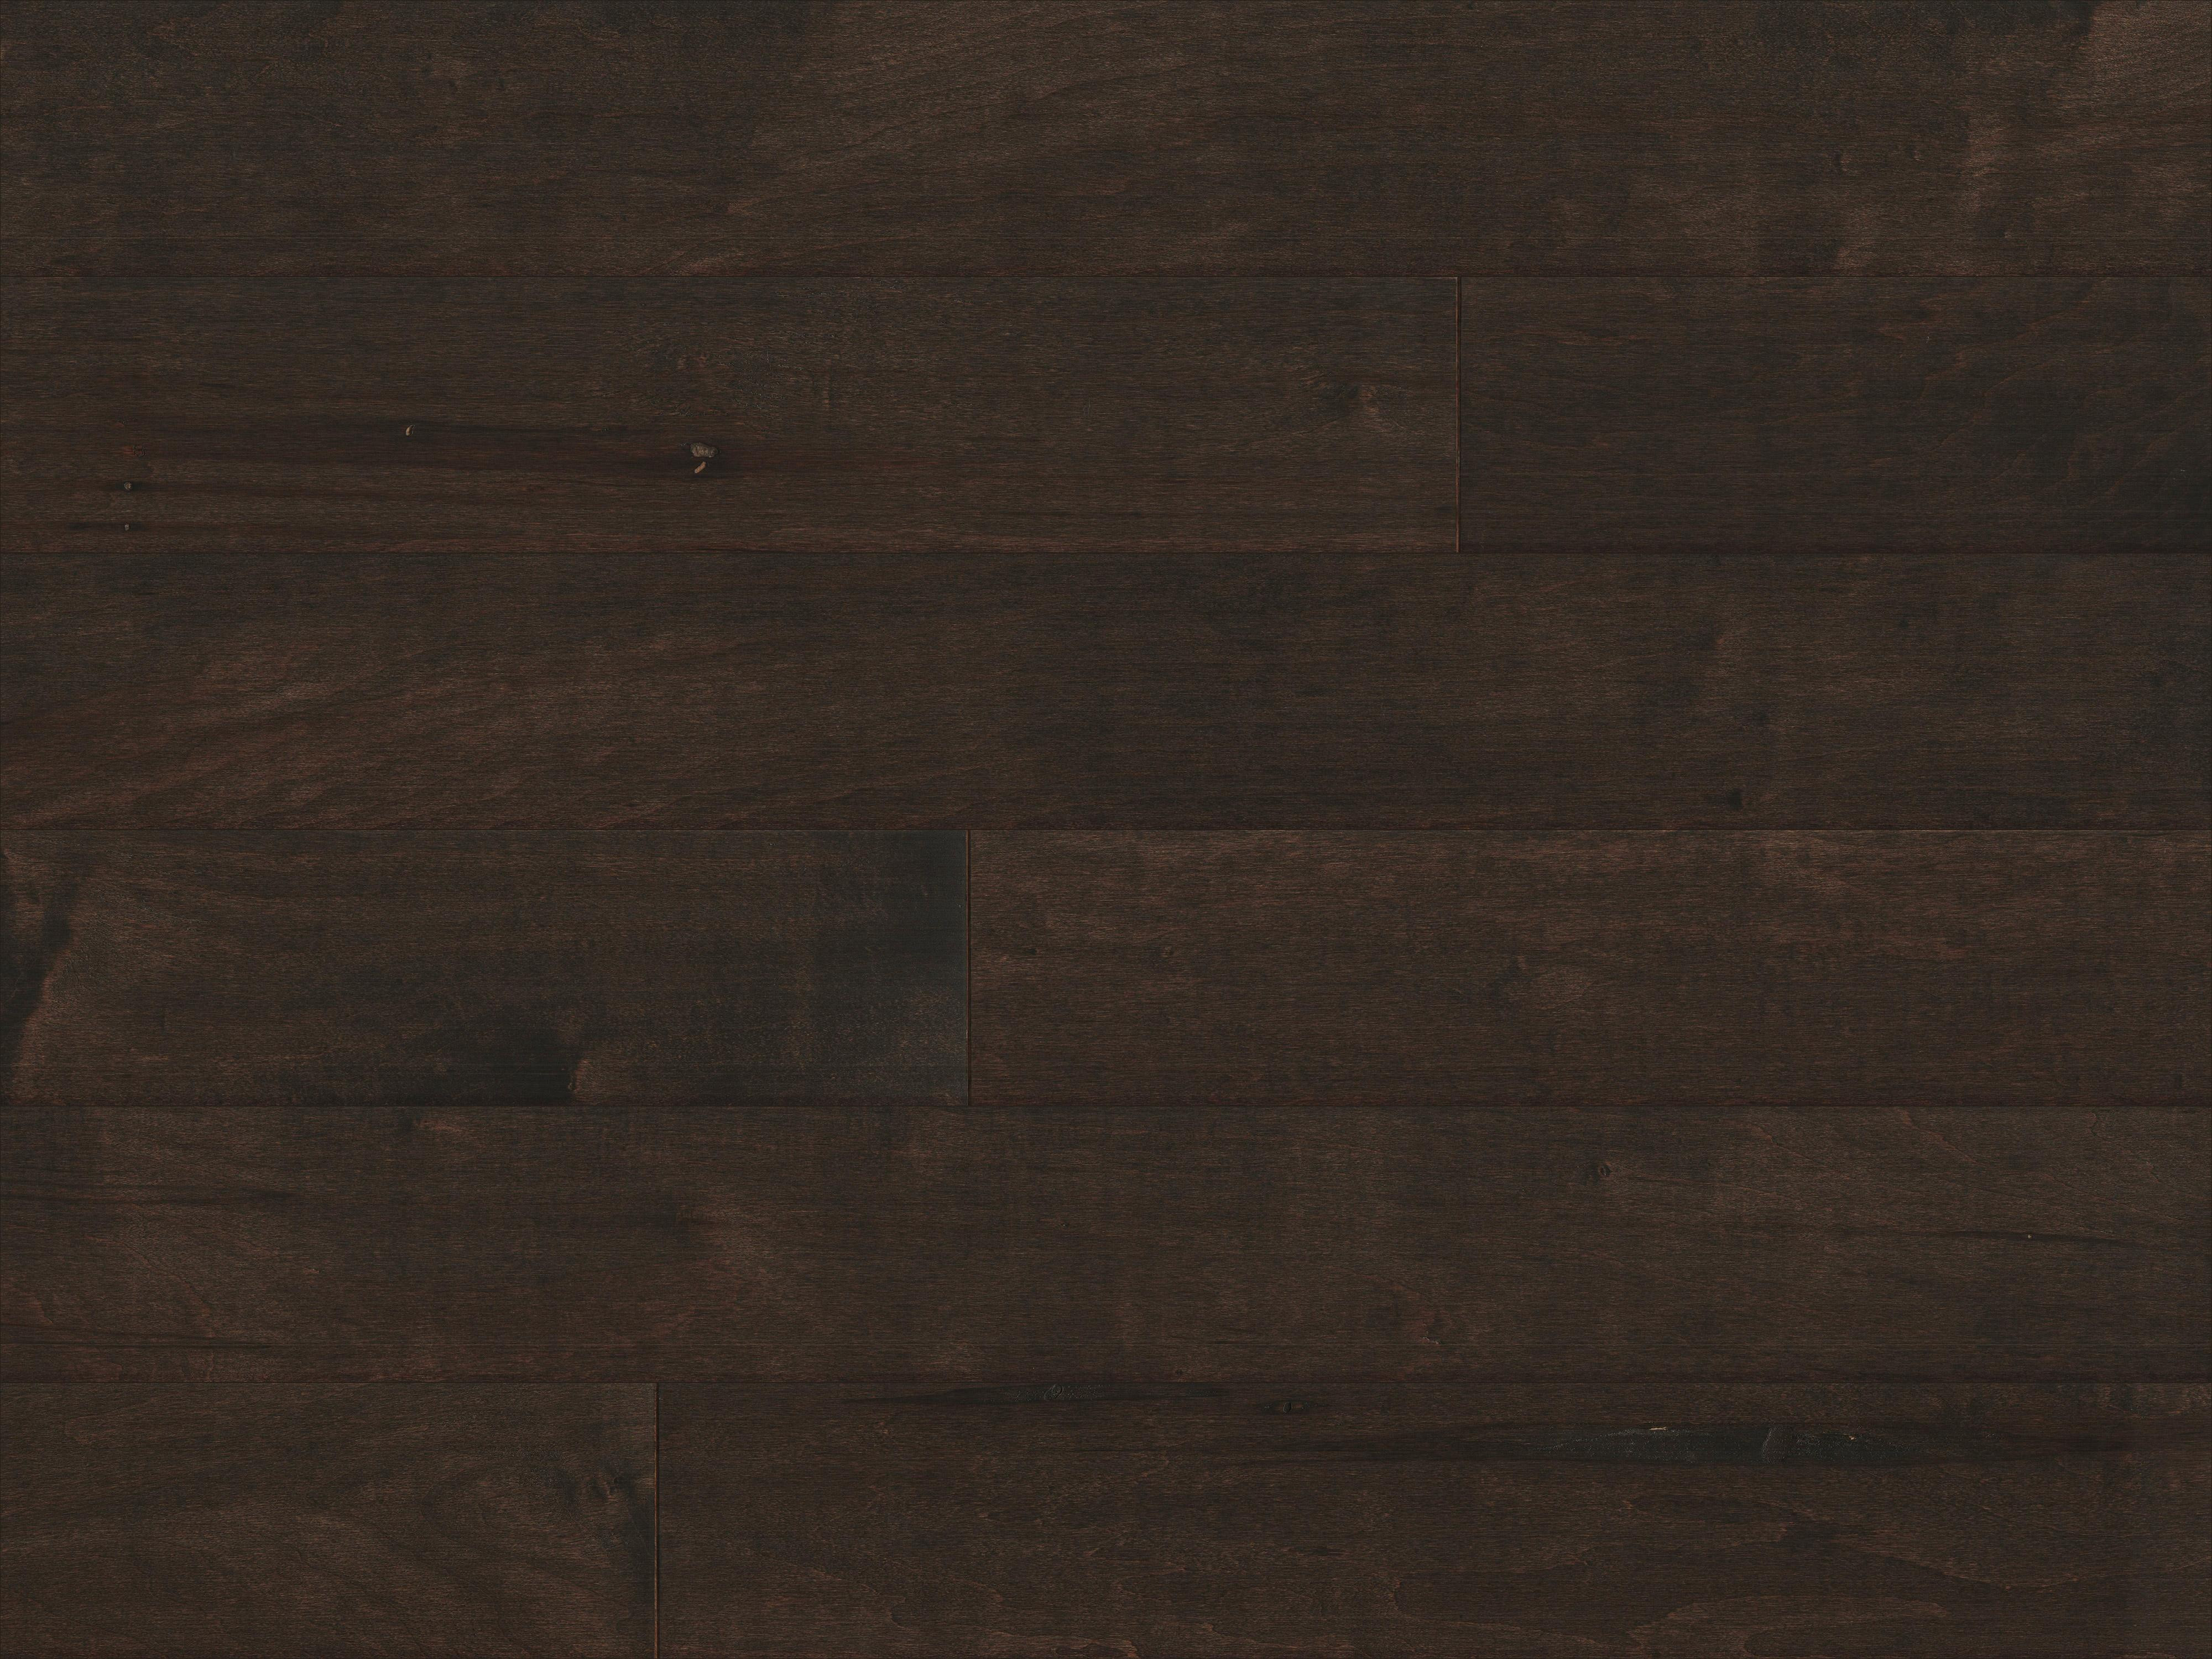 5 inch walnut hardwood flooring of mullican ridgecrest maple cappuccino 1 2 thick 5 wide engineered in mullican ridgecrest maple cappuccino 1 2 thick 5 wide engineered hardwood flooring